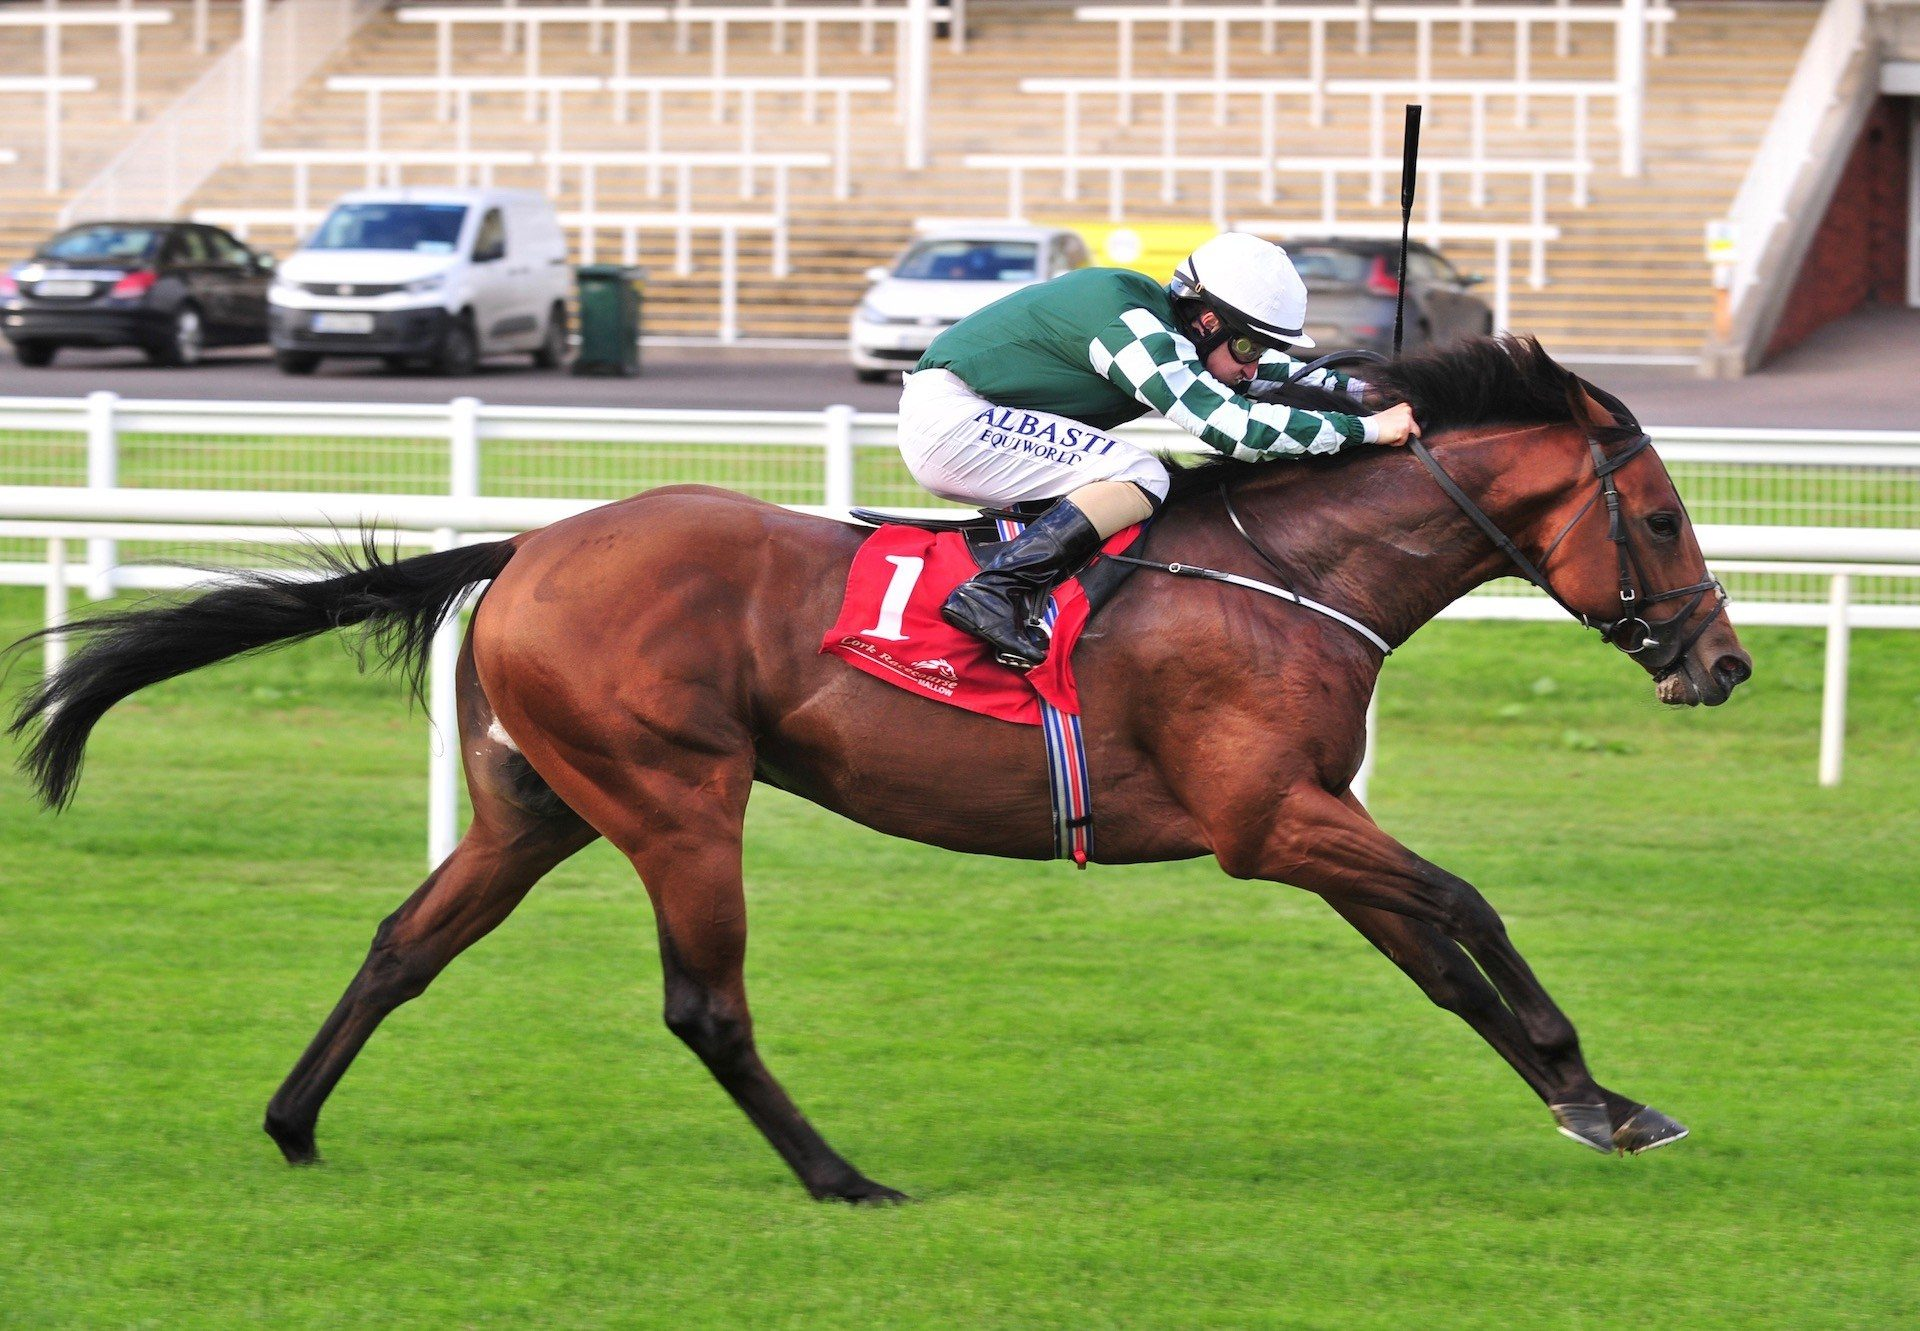 Ace Aussie (Australia) Wins His Maiden At Cork